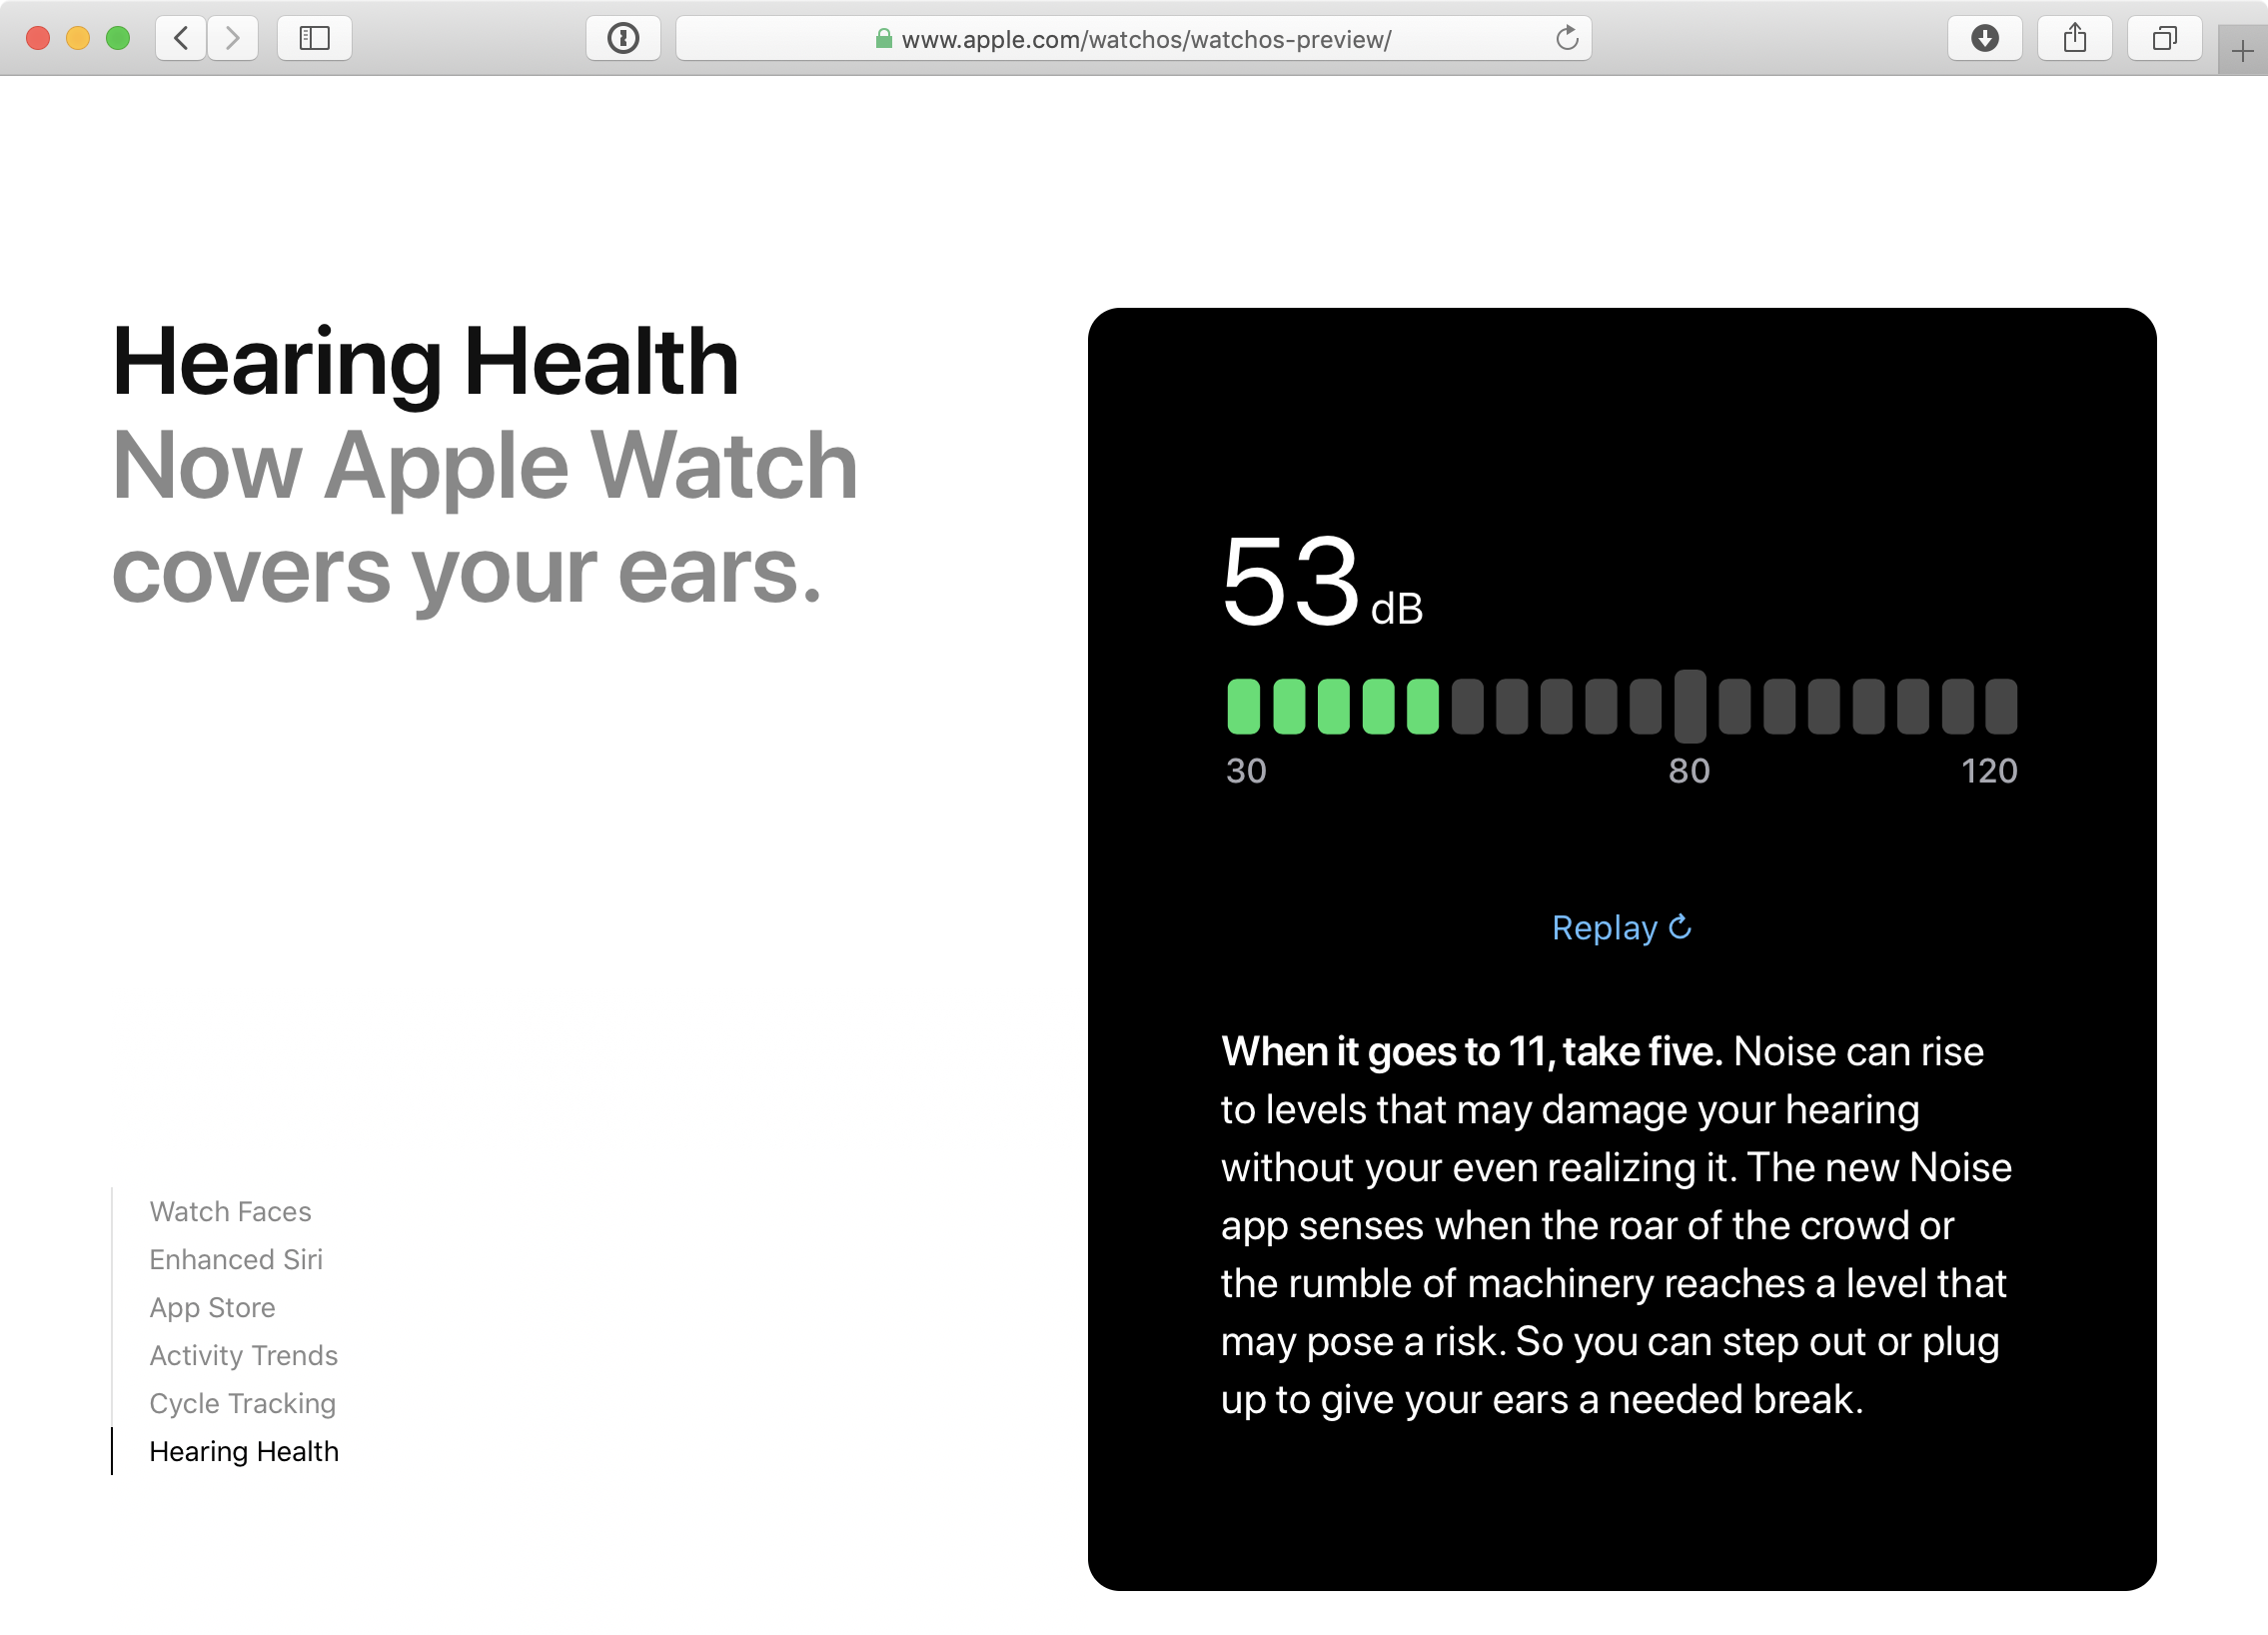 Hearing health innovations in watchOS 6 include a new Noise app